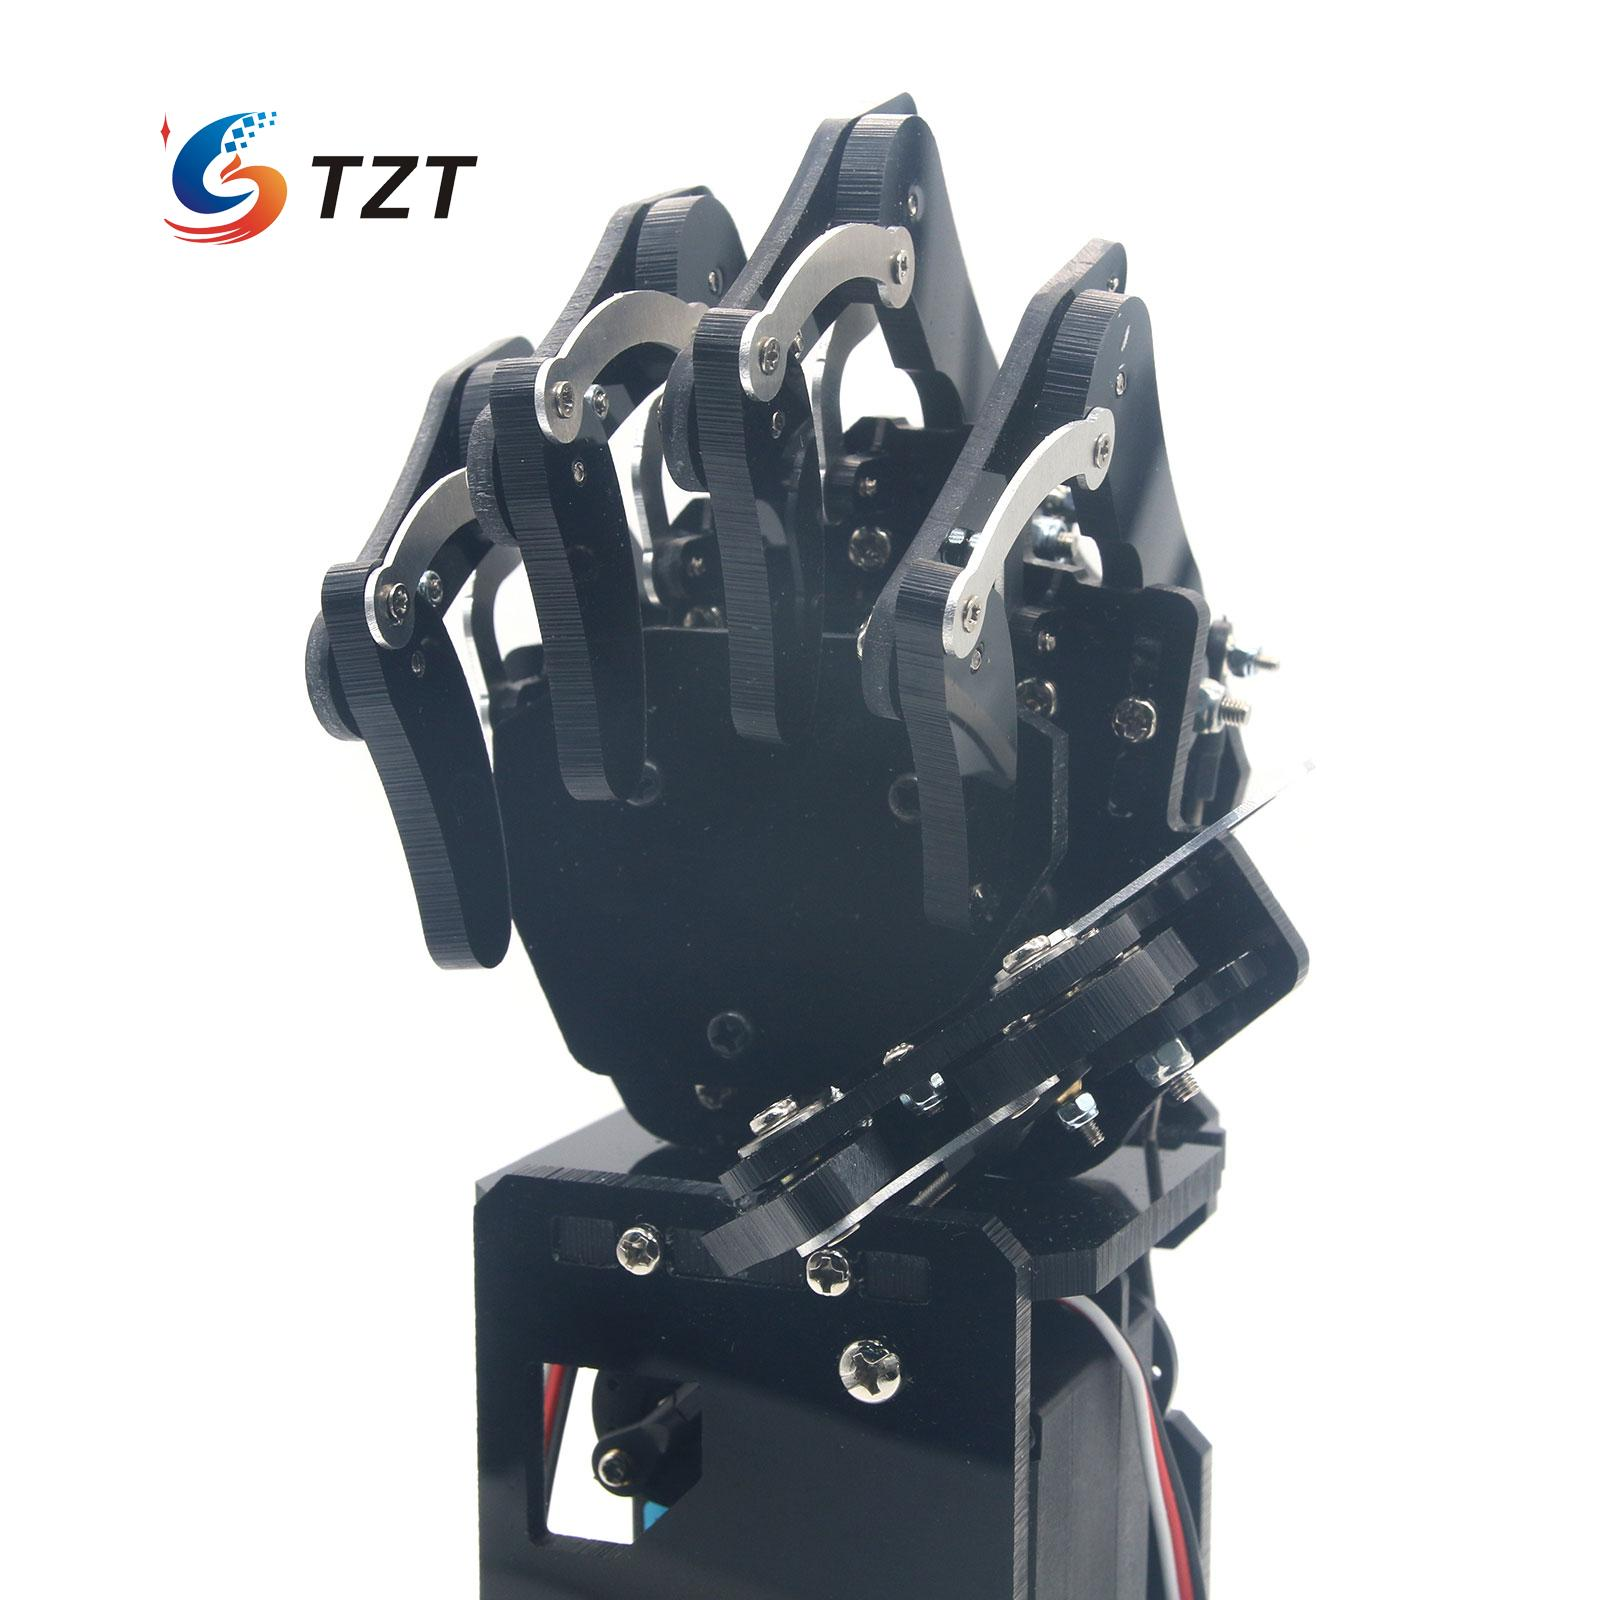 2017 Robot Mechanical Arm Claw Humanoid Right Hand with Servos DIY Assembled